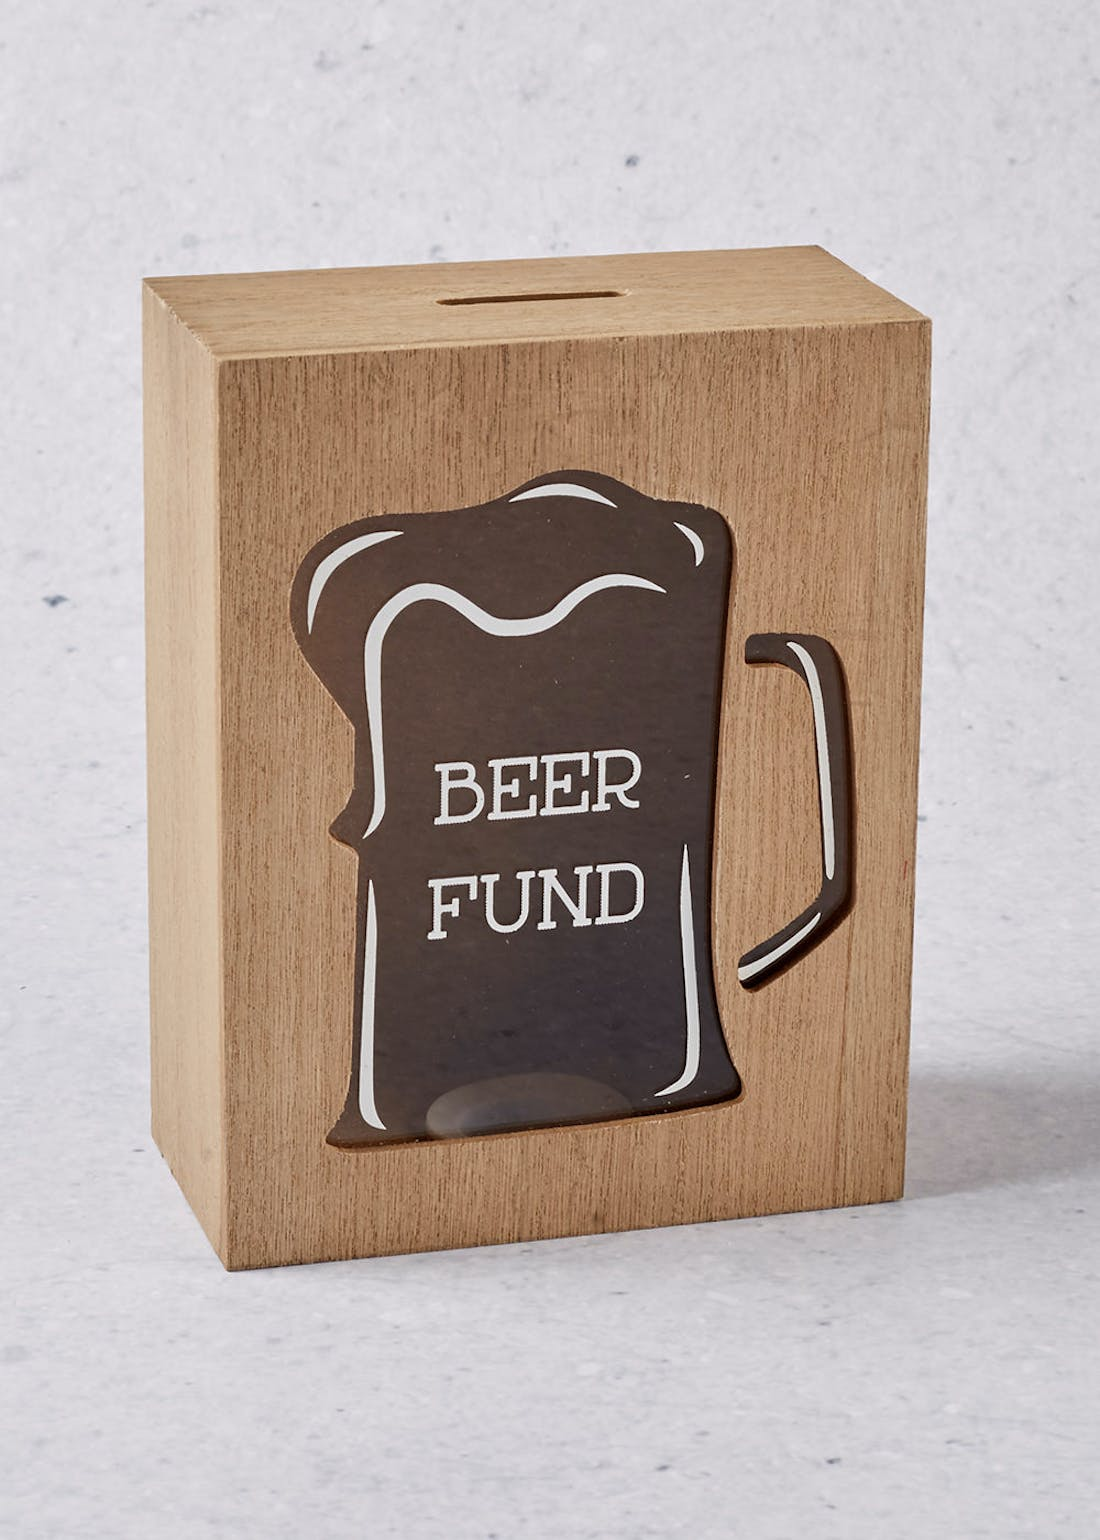 Beer Wooden Money Box (18cm x 14cm x 7cm)